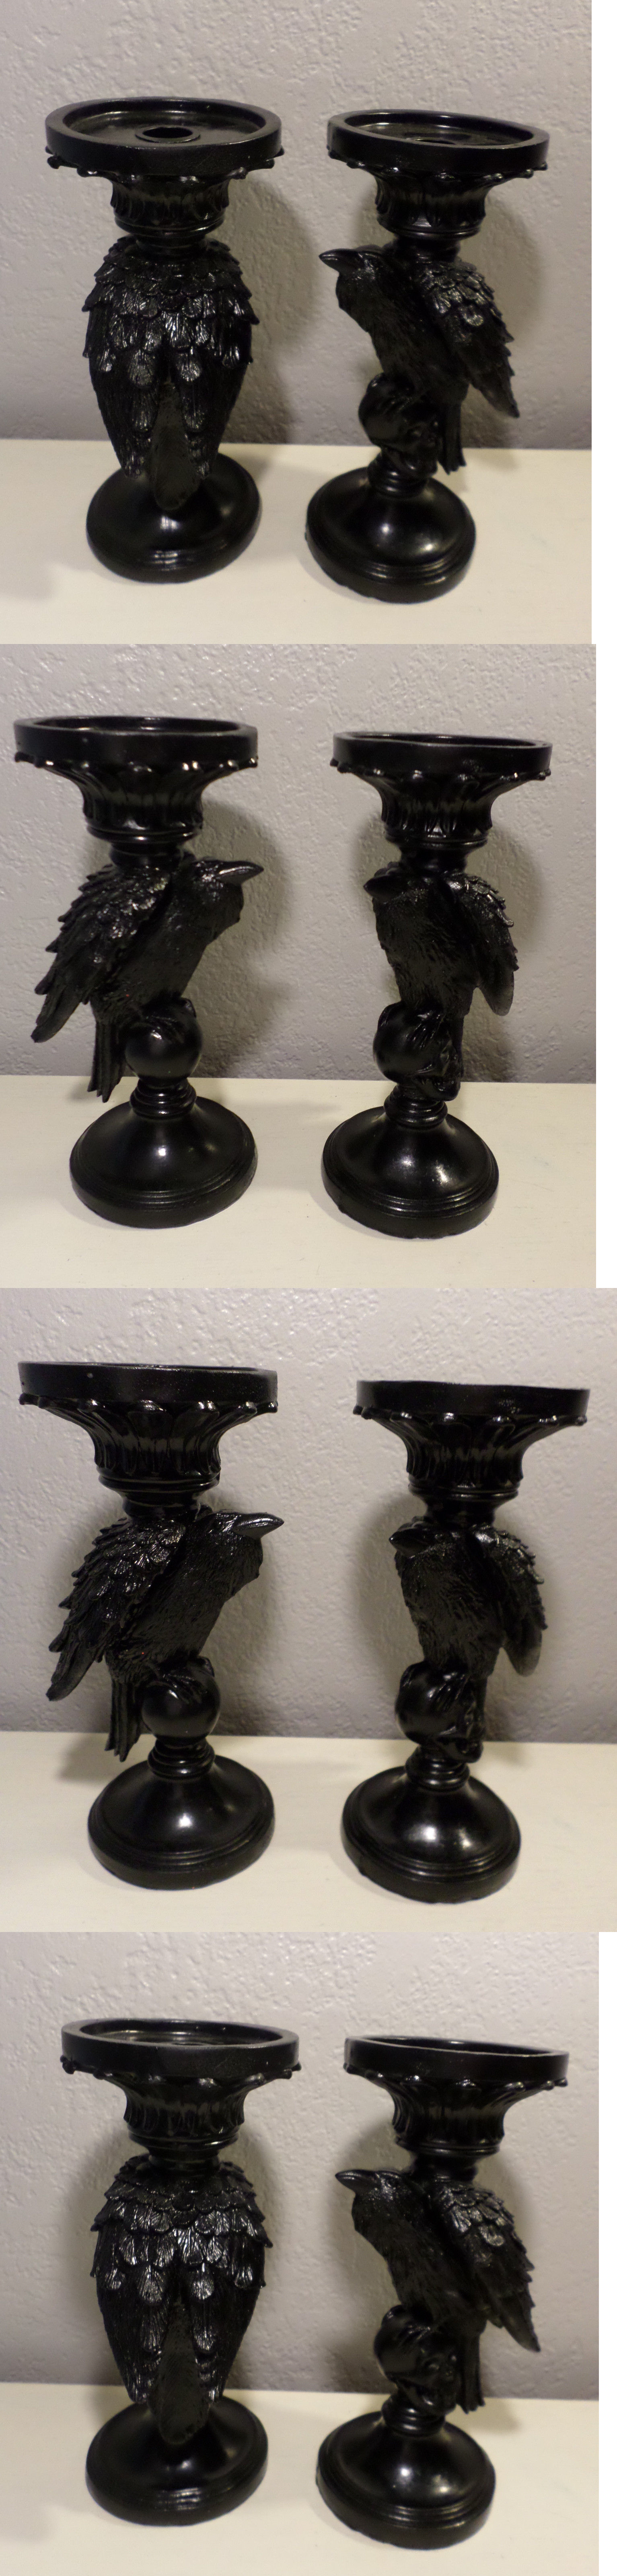 halloween 170094 2 black ravens crows candle holders fall halloween 170094 2 black ravens crows candle holders fall halloween props spooky home decor new